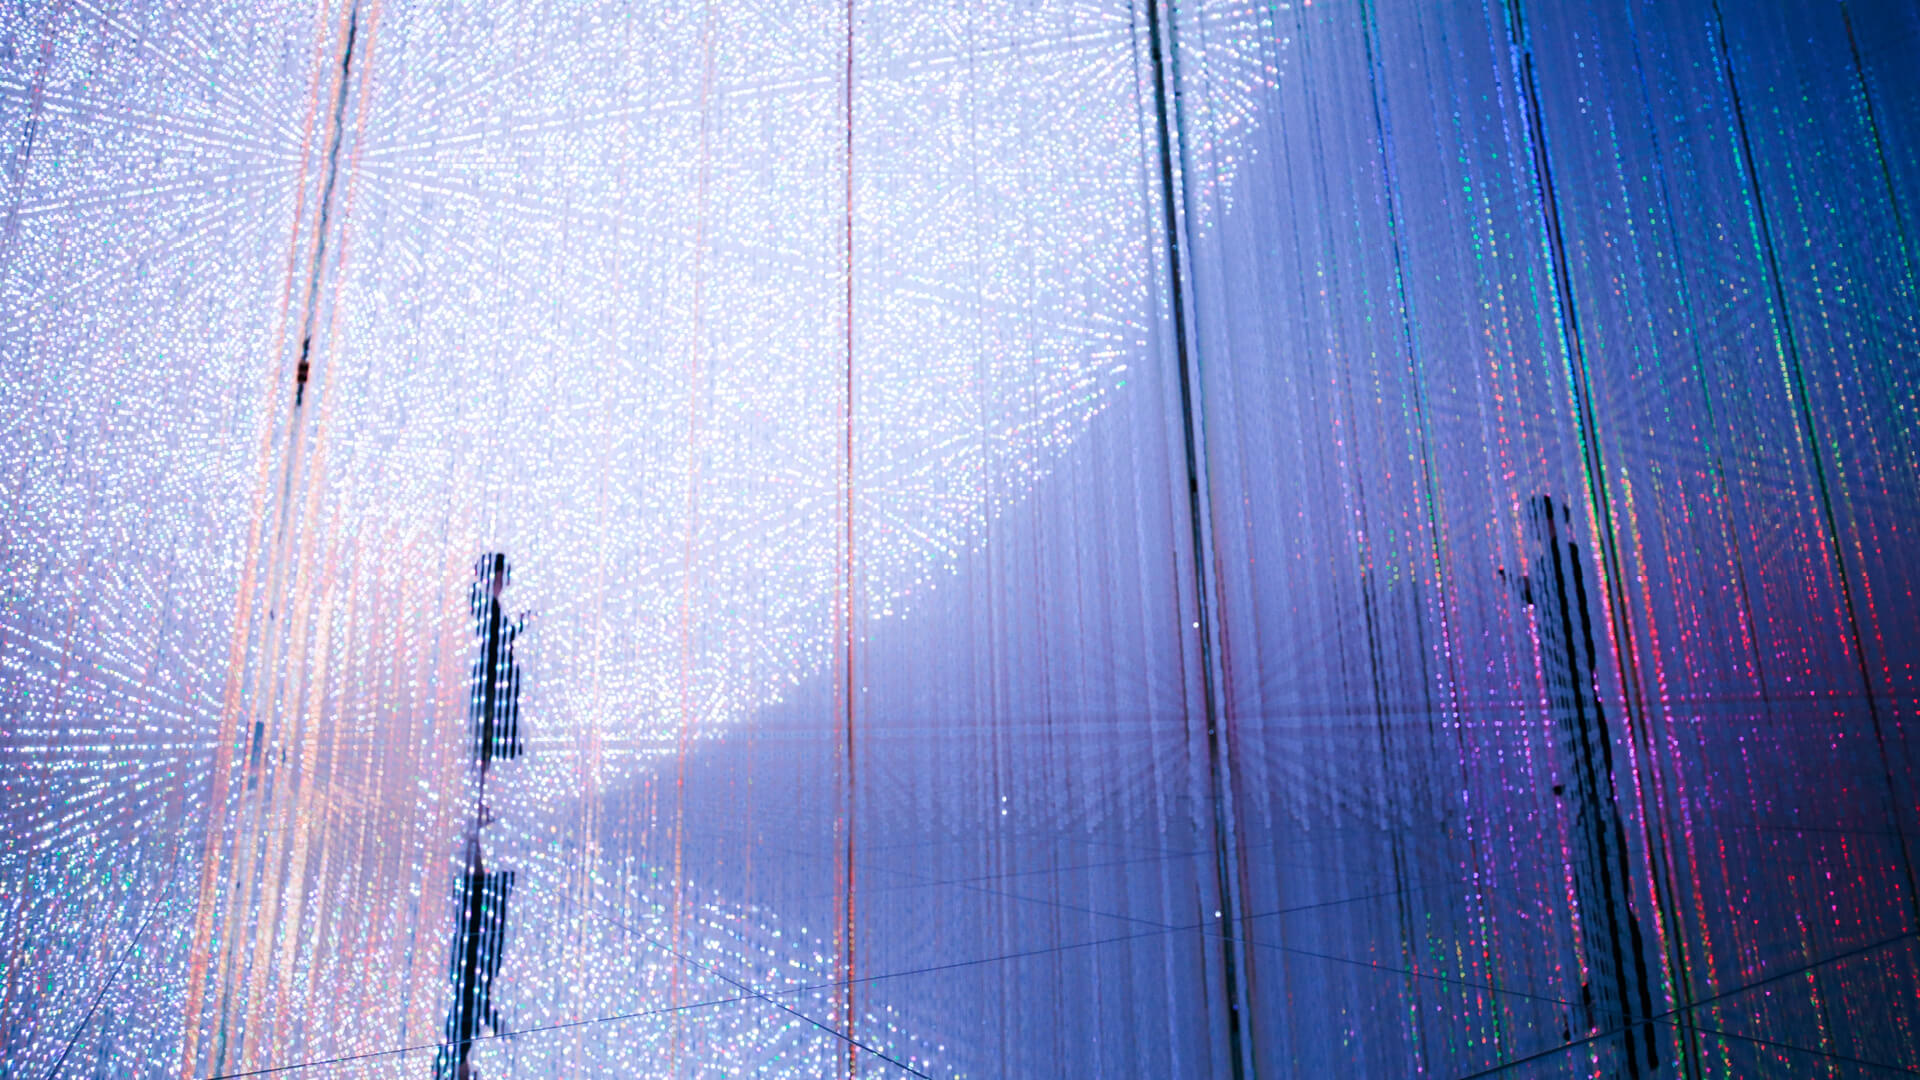 'The Infinite Crystal Universe' (2015-2018) is a beautiful, immersive and interactive light sculpture by teamLab | teamLab Planets Tokyo | STIRworld